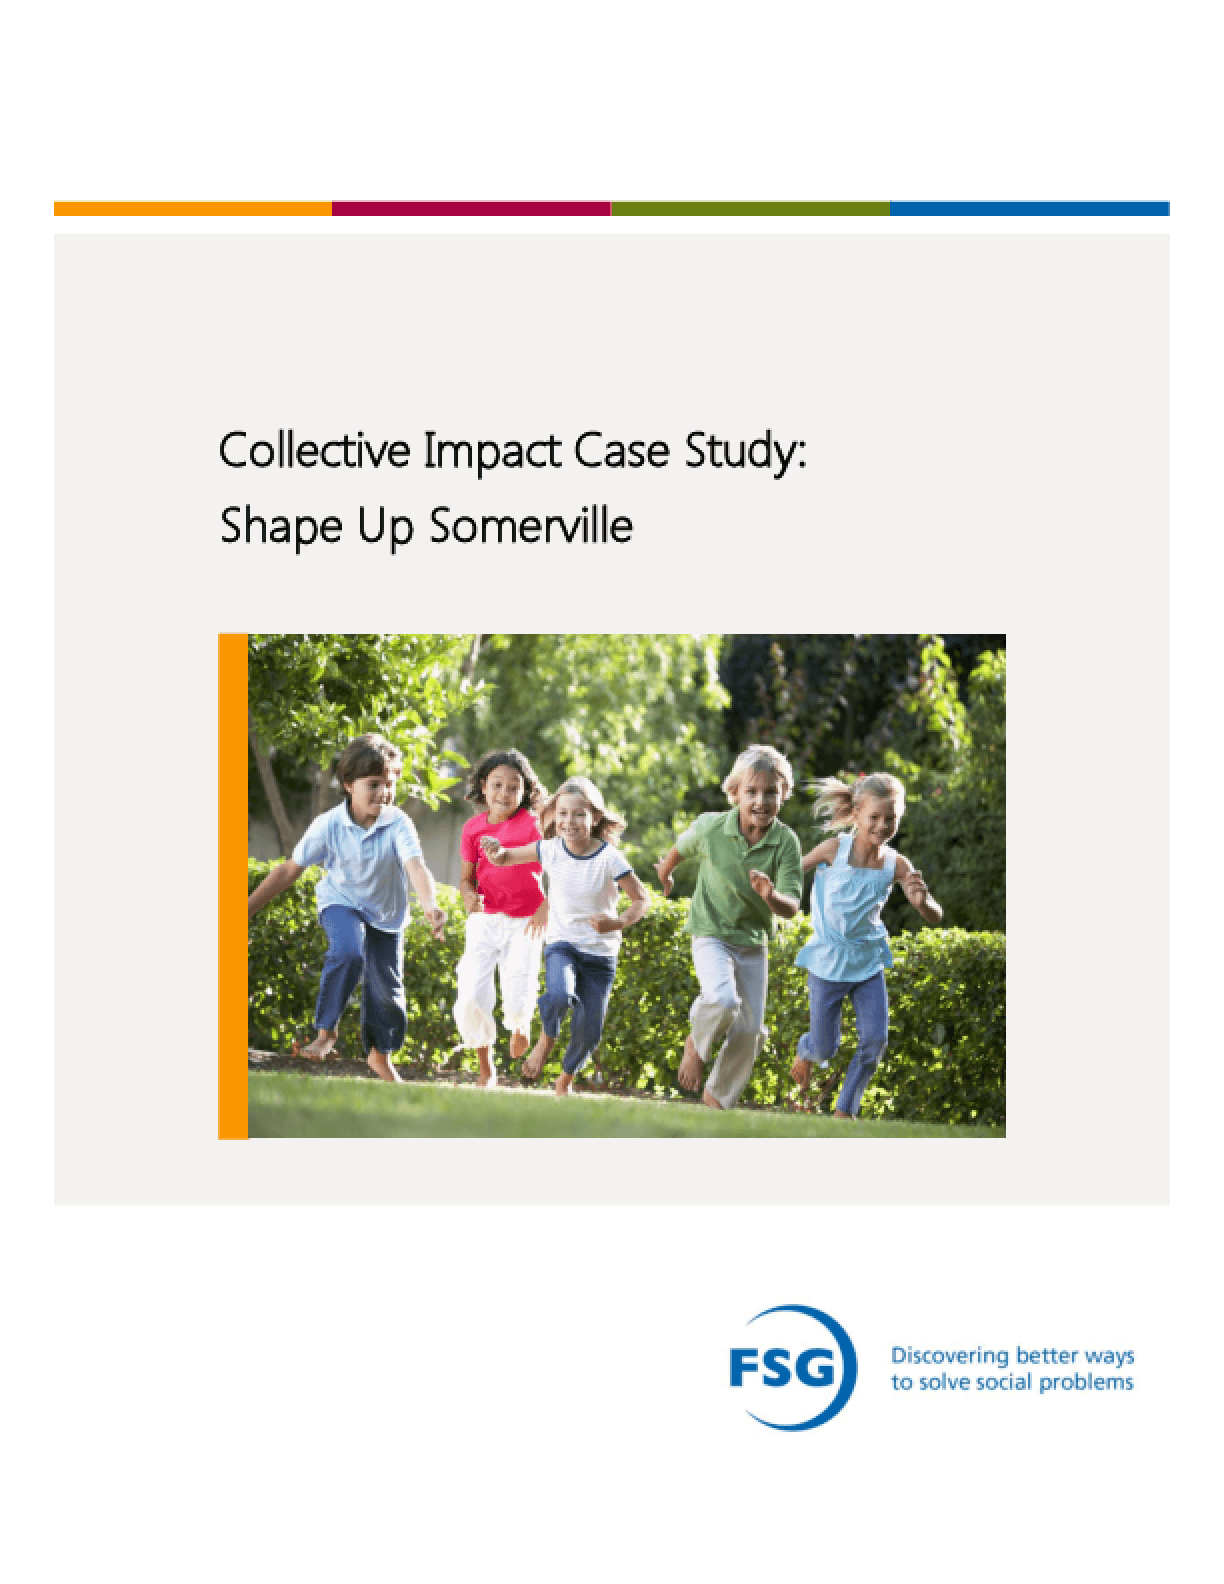 Collective Impact Case Study: Shape Up Somerville